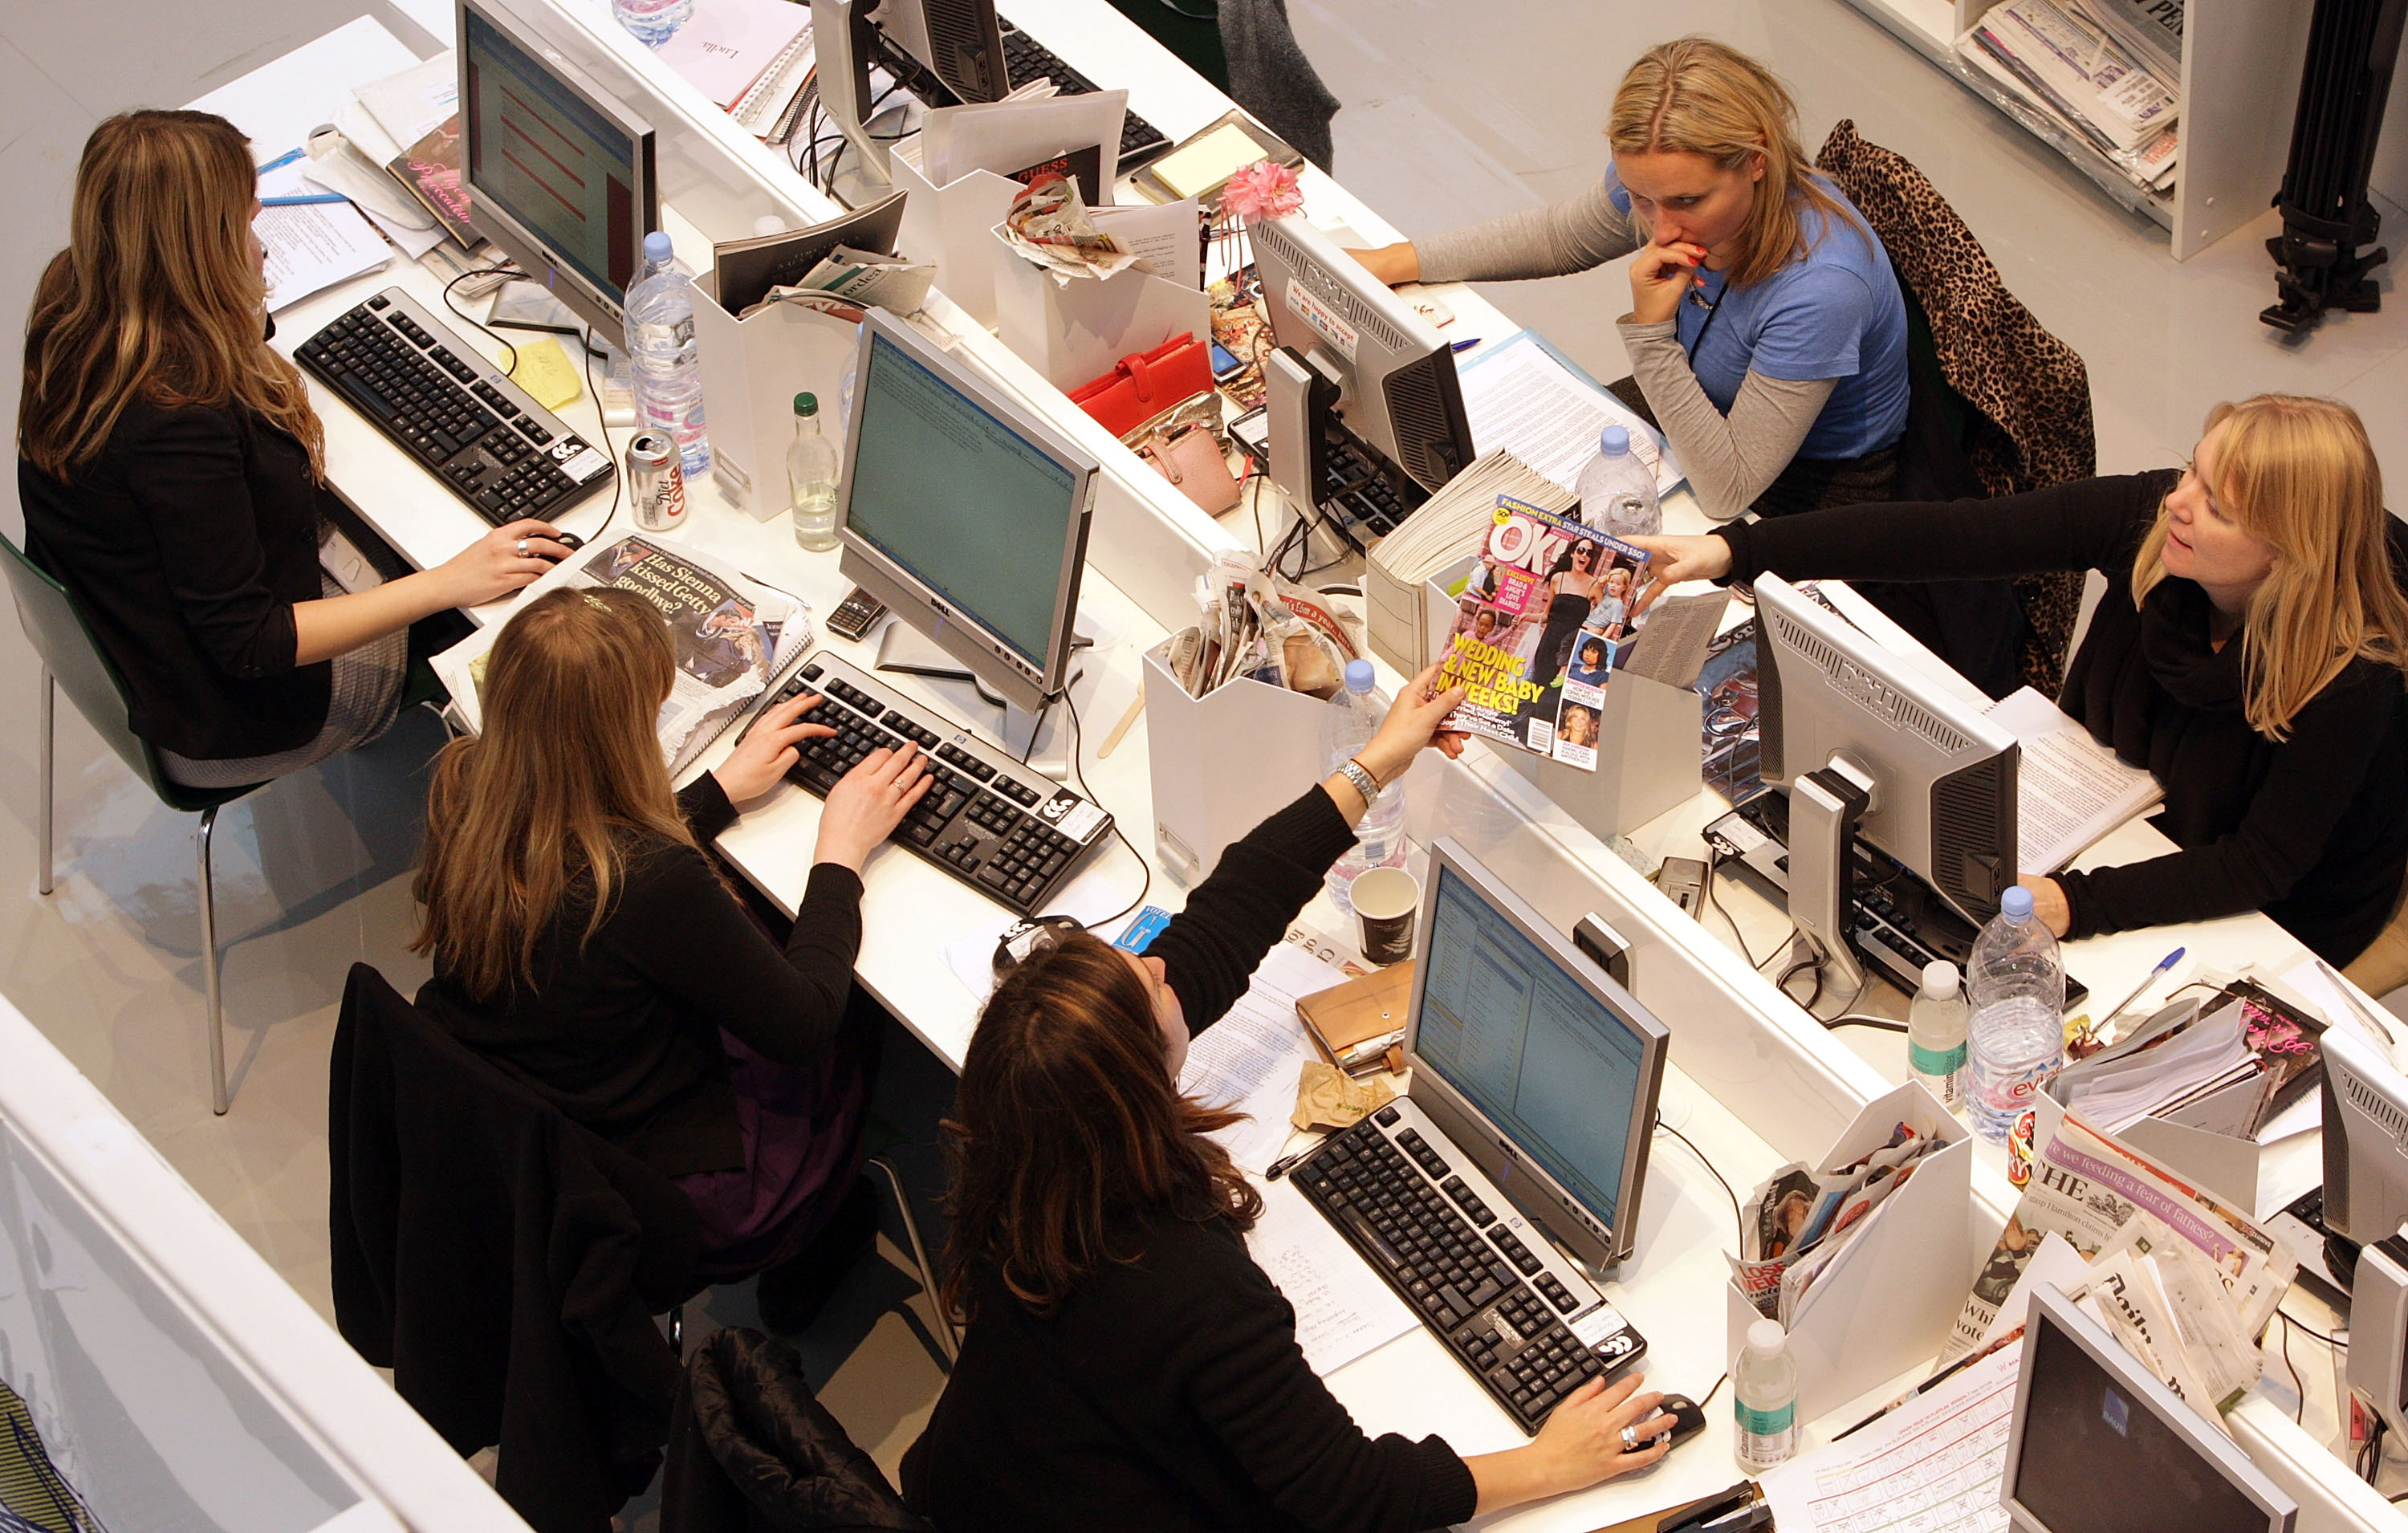 Production staff on the weekly fashion magazine, Grazia edit the magazine in a temporary office inside the Westfield shopping centre on November 3, 2008 in London.